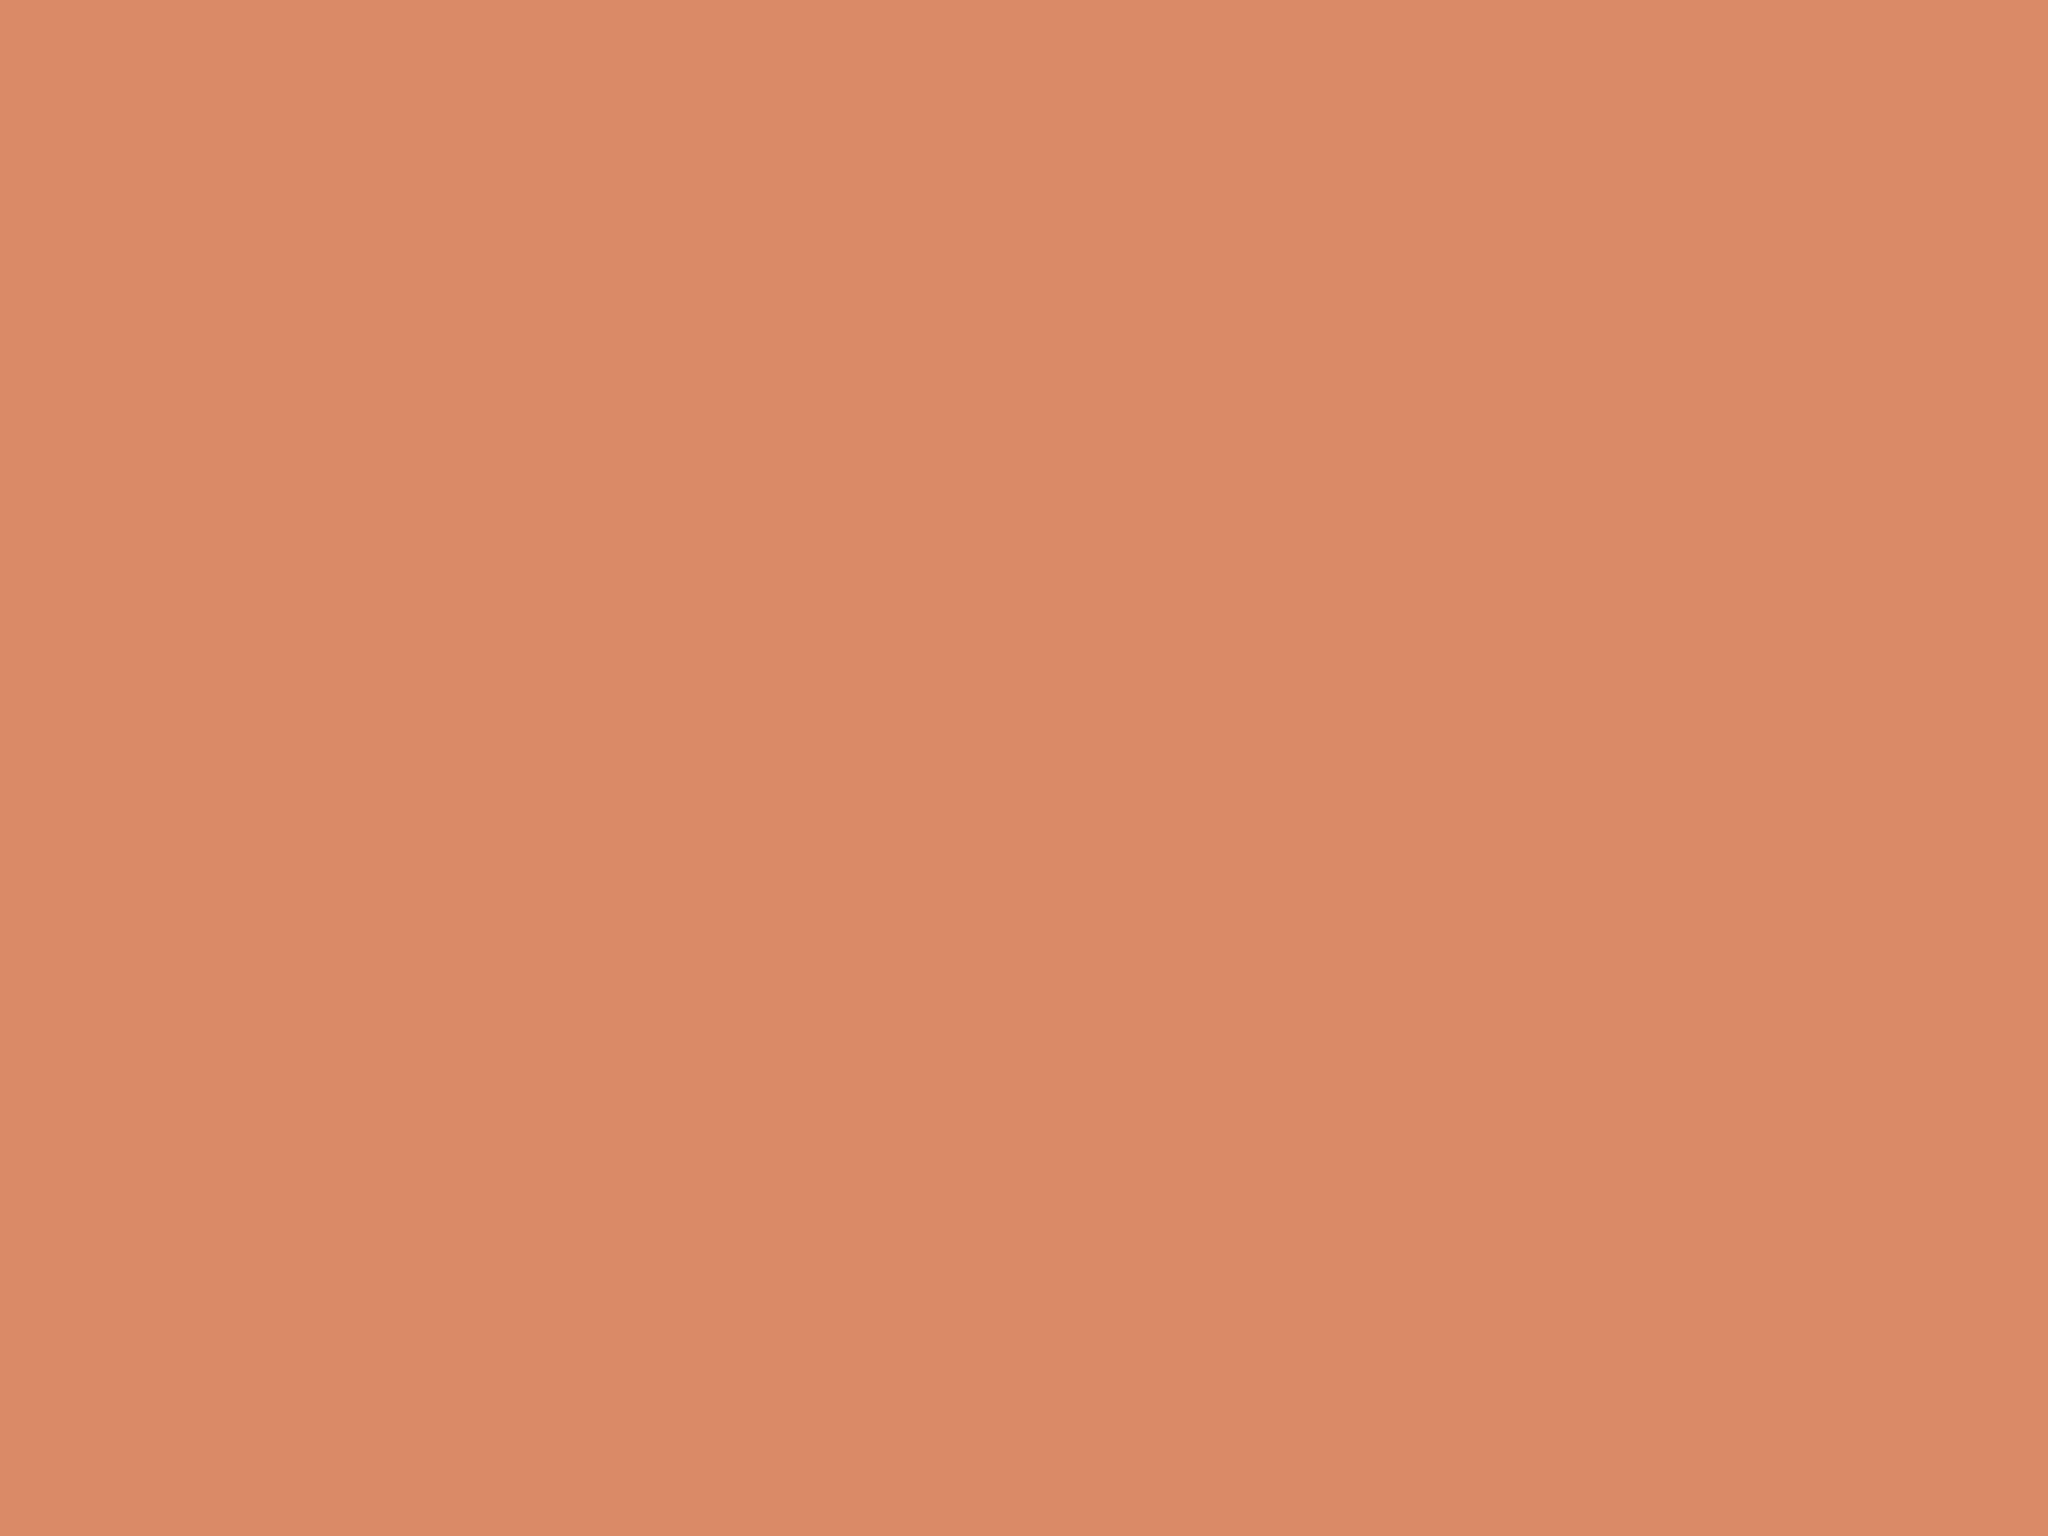 2048x1536 Pale Copper Solid Color Background